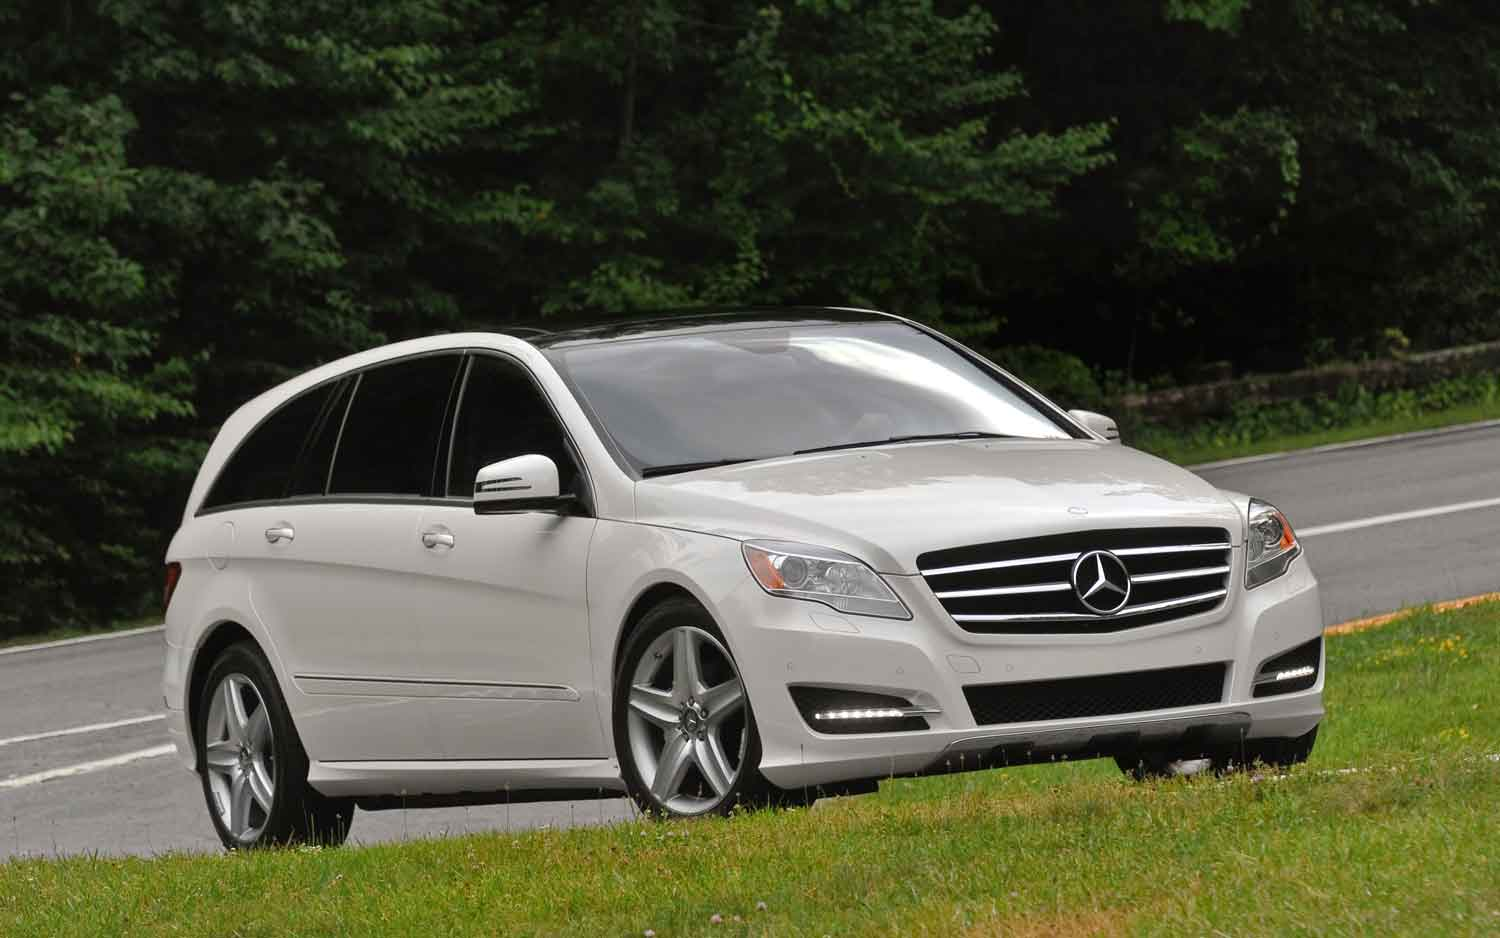 in benz used car class for sale available clifton mercedes newark mahwah nj r paterson passaic